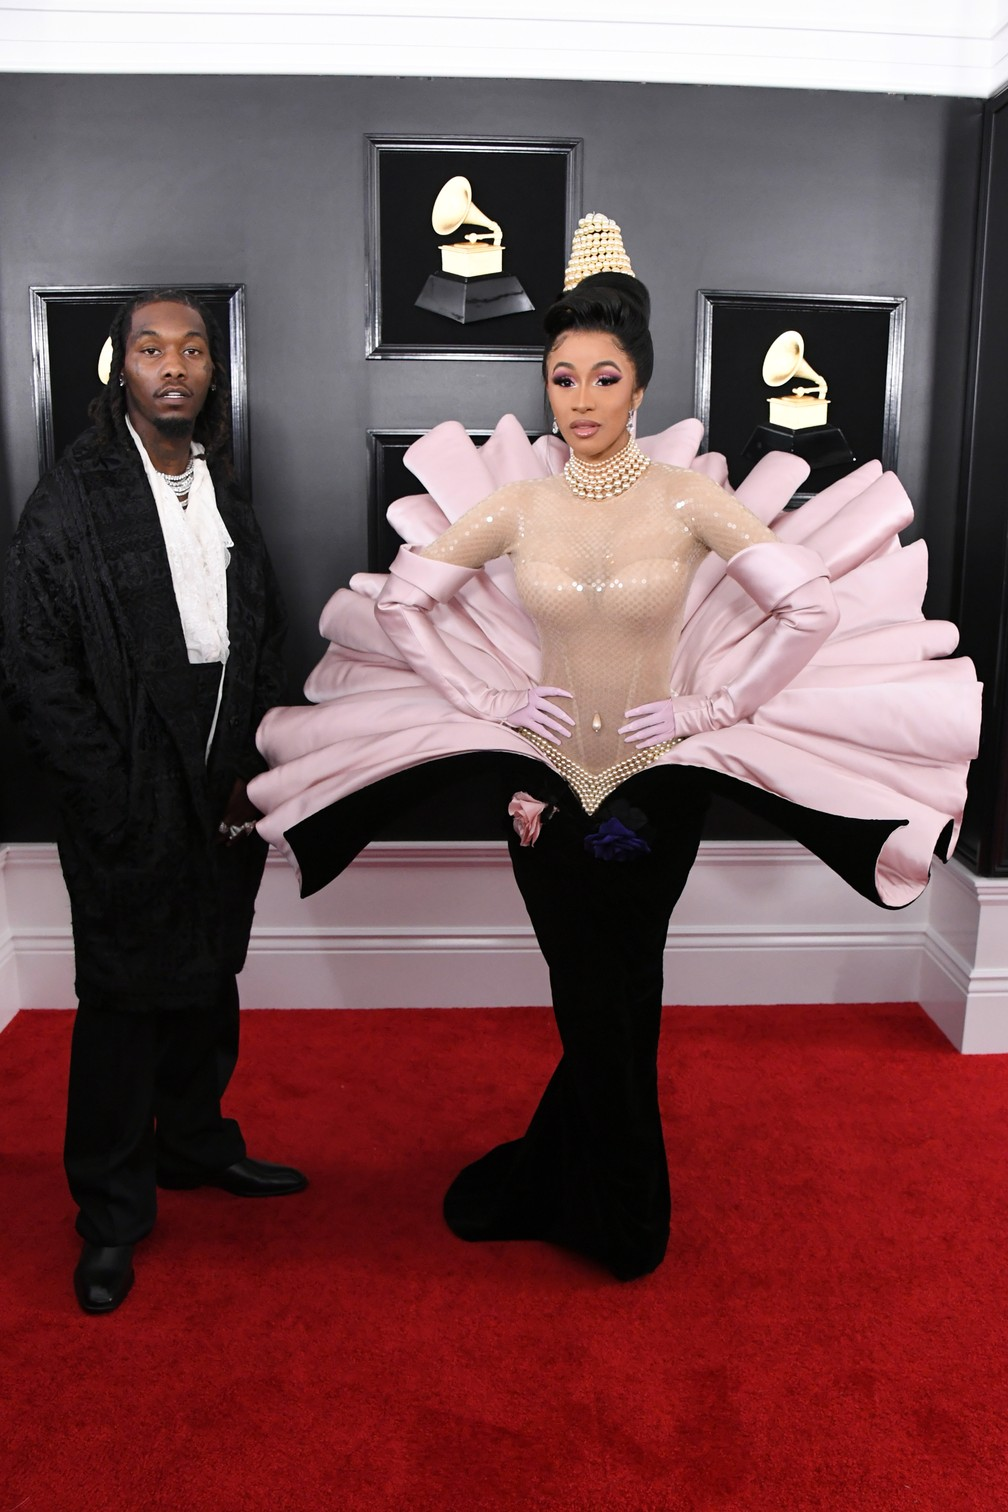 Os rappers Offset e Cardi B no Grammy 2019, em Los Angeles — Foto: Jon Kopaloff / GETTY IMAGES NORTH AMERICA / AFP